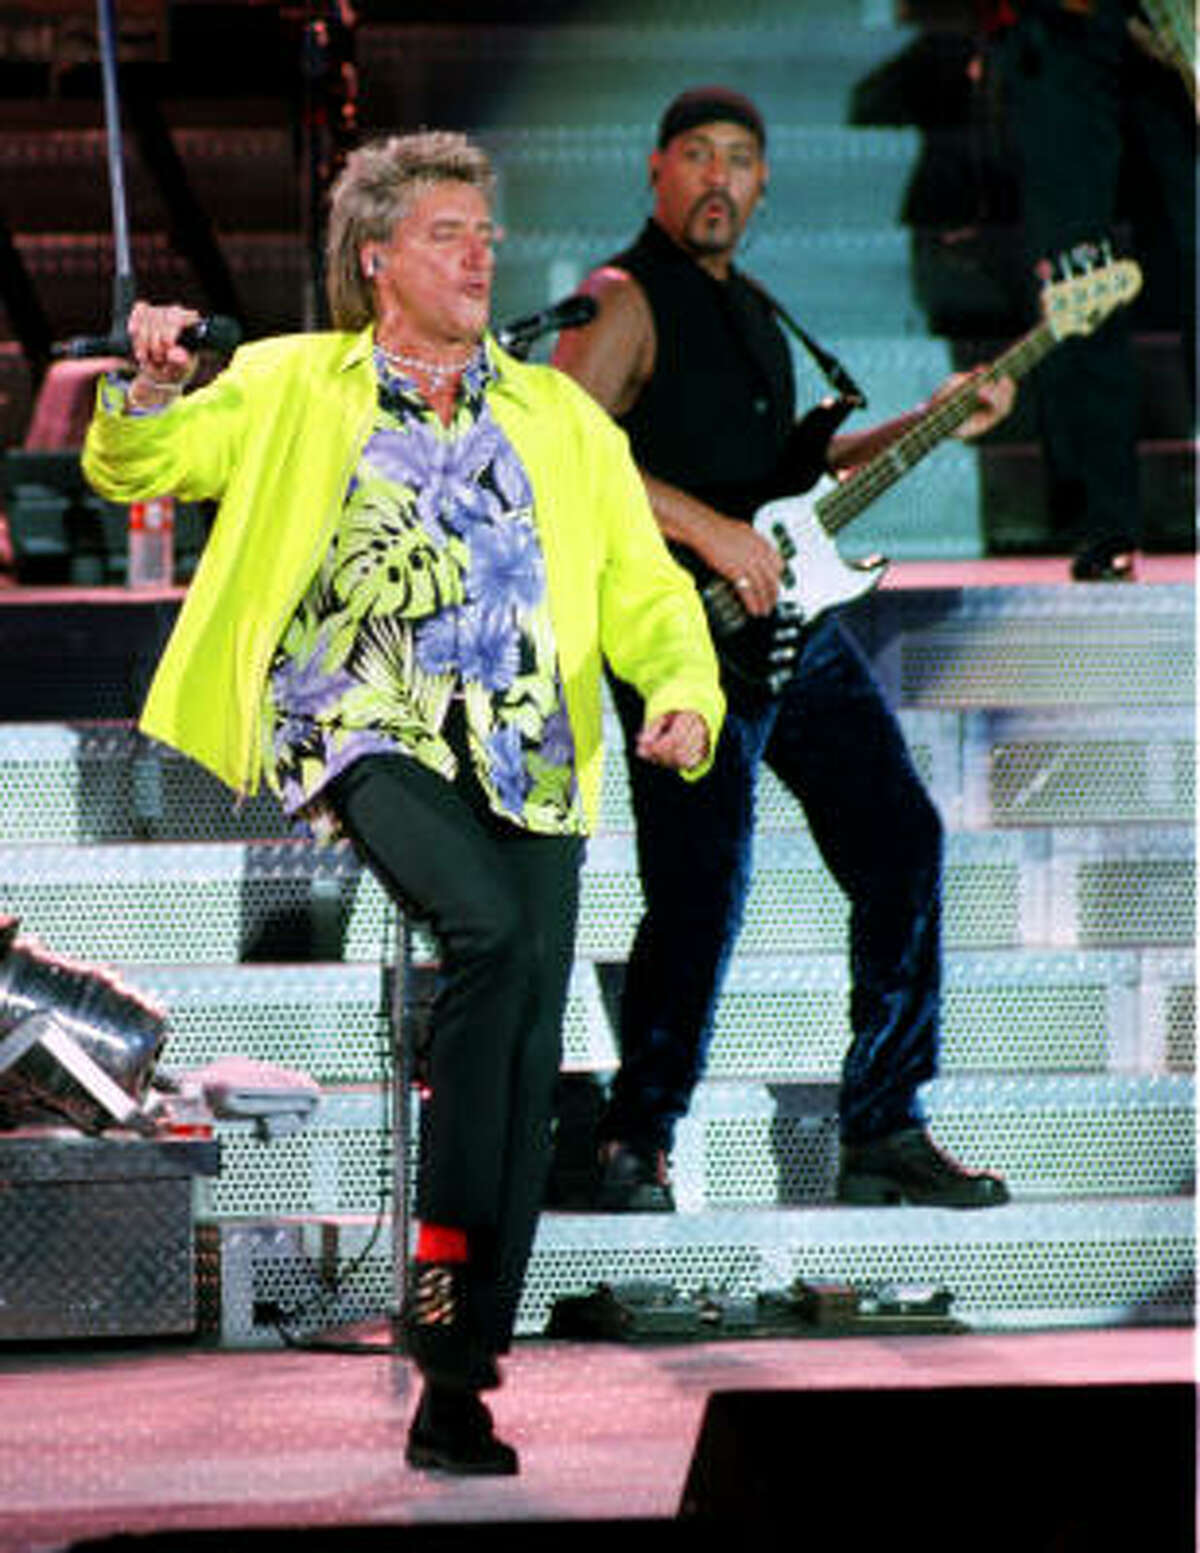 Rod Stewart getting down in a neon yellow blazer at the Cynthia Woods Mitchell Pavilion in 1998.